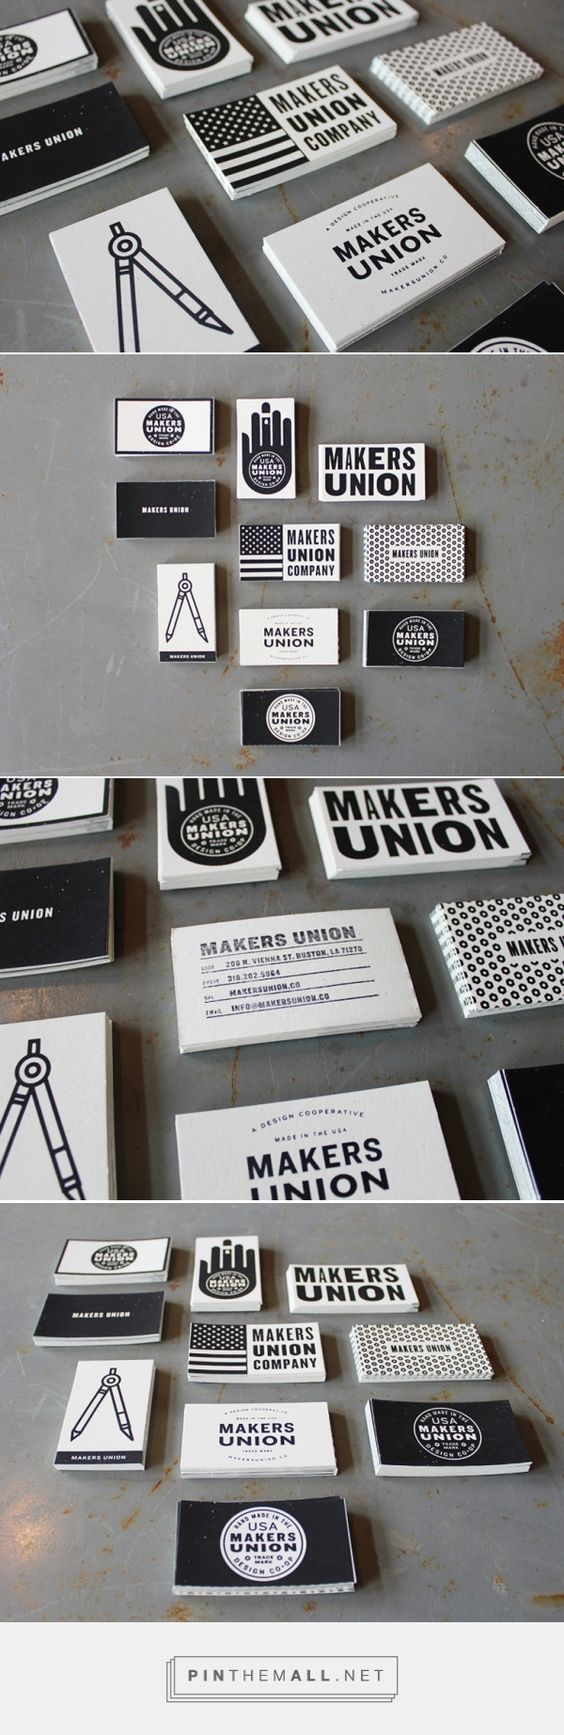 Business Cards Online Union Bug Gallery - Card Design And Card ...